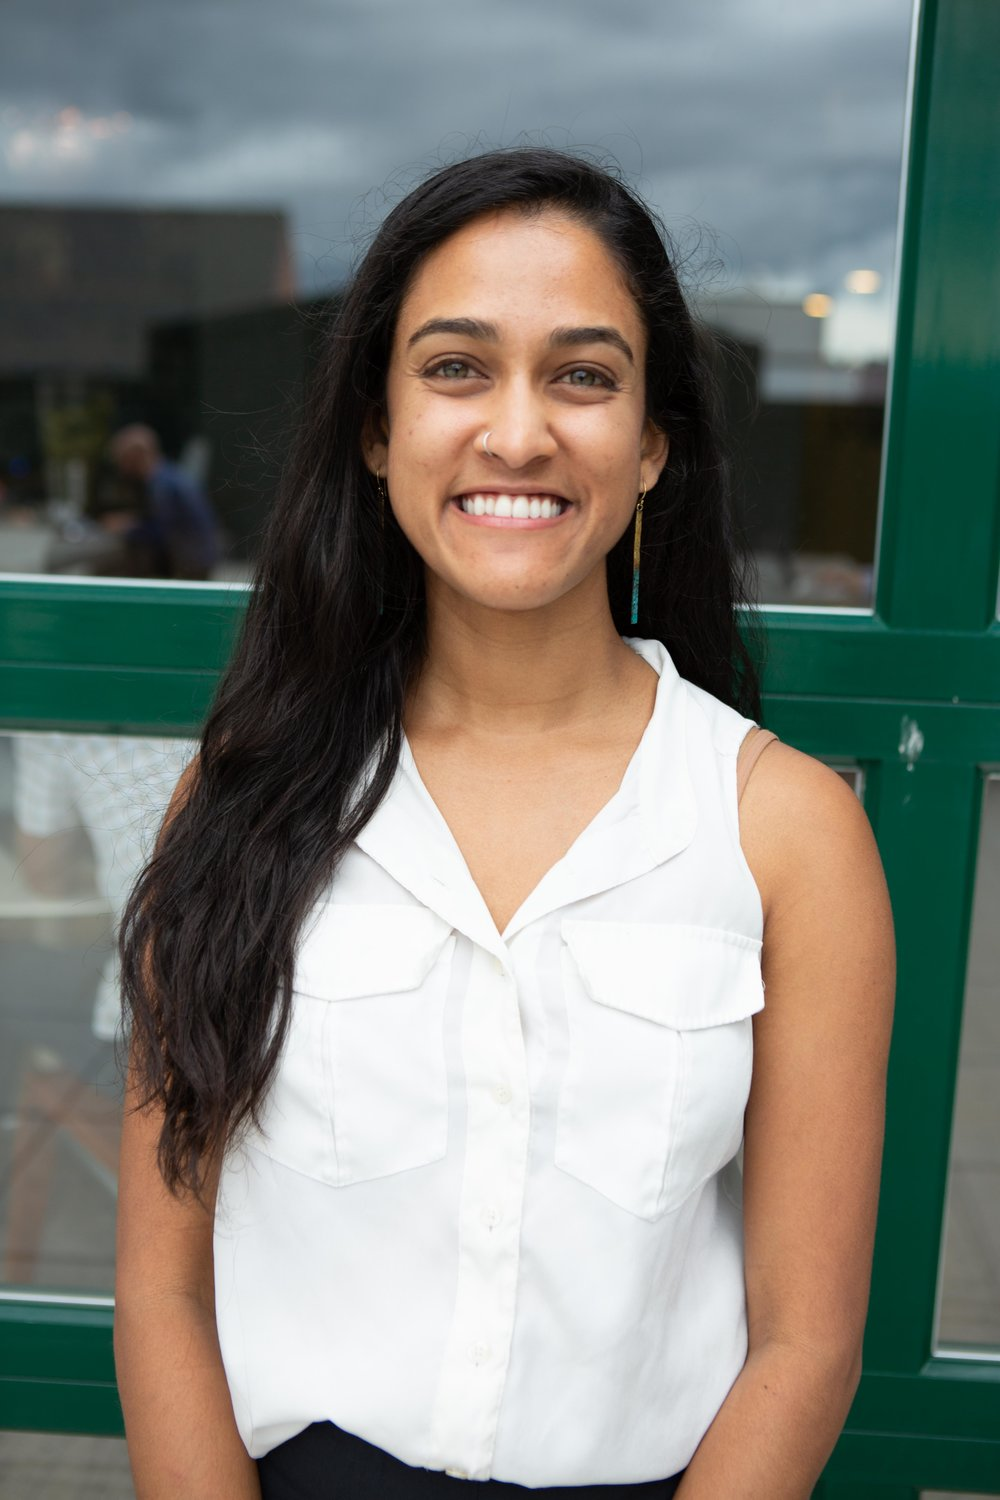 Ramya Ramaswamy - SOCIAL MEDIA & MARKETING INTERNRamya has been in the education sector for the last 5 years. She graduated from the University of North Carolina at Chapel Hill in 2013. Upon graduation, she taught in a DC charter school. She then pursued her interest in recruiting and retaining great teachers on the DC Public Schools' Teacher Recruitment and Selection team. Ramya went back into the classroom in 2015 as an elementary school teacher at DCPS' Brightwood Education Campus. While still in the classroom, Ramya is also interning at oneTILT due to a passion for diversity, equity, and inclusion work in the education sector.